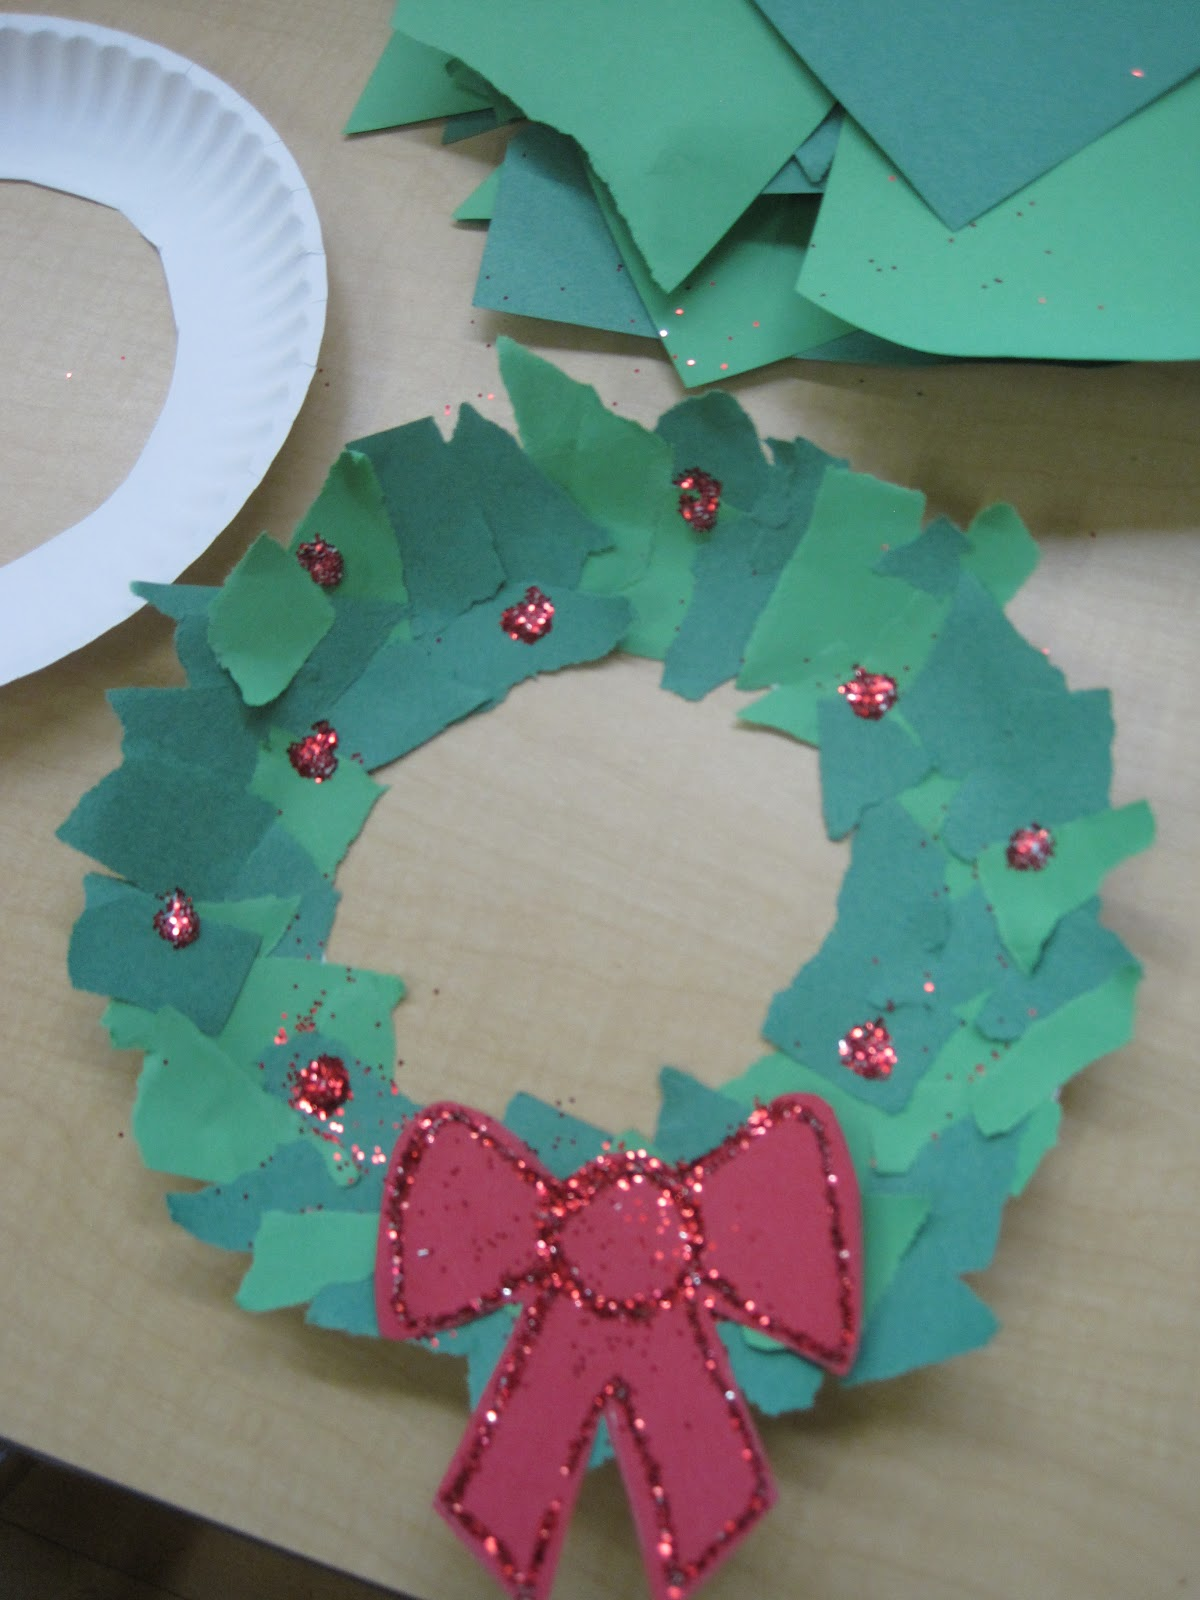 Fun with jan brett mrs jones 39 s kindergarten for Christmas crafts for kindergarten students